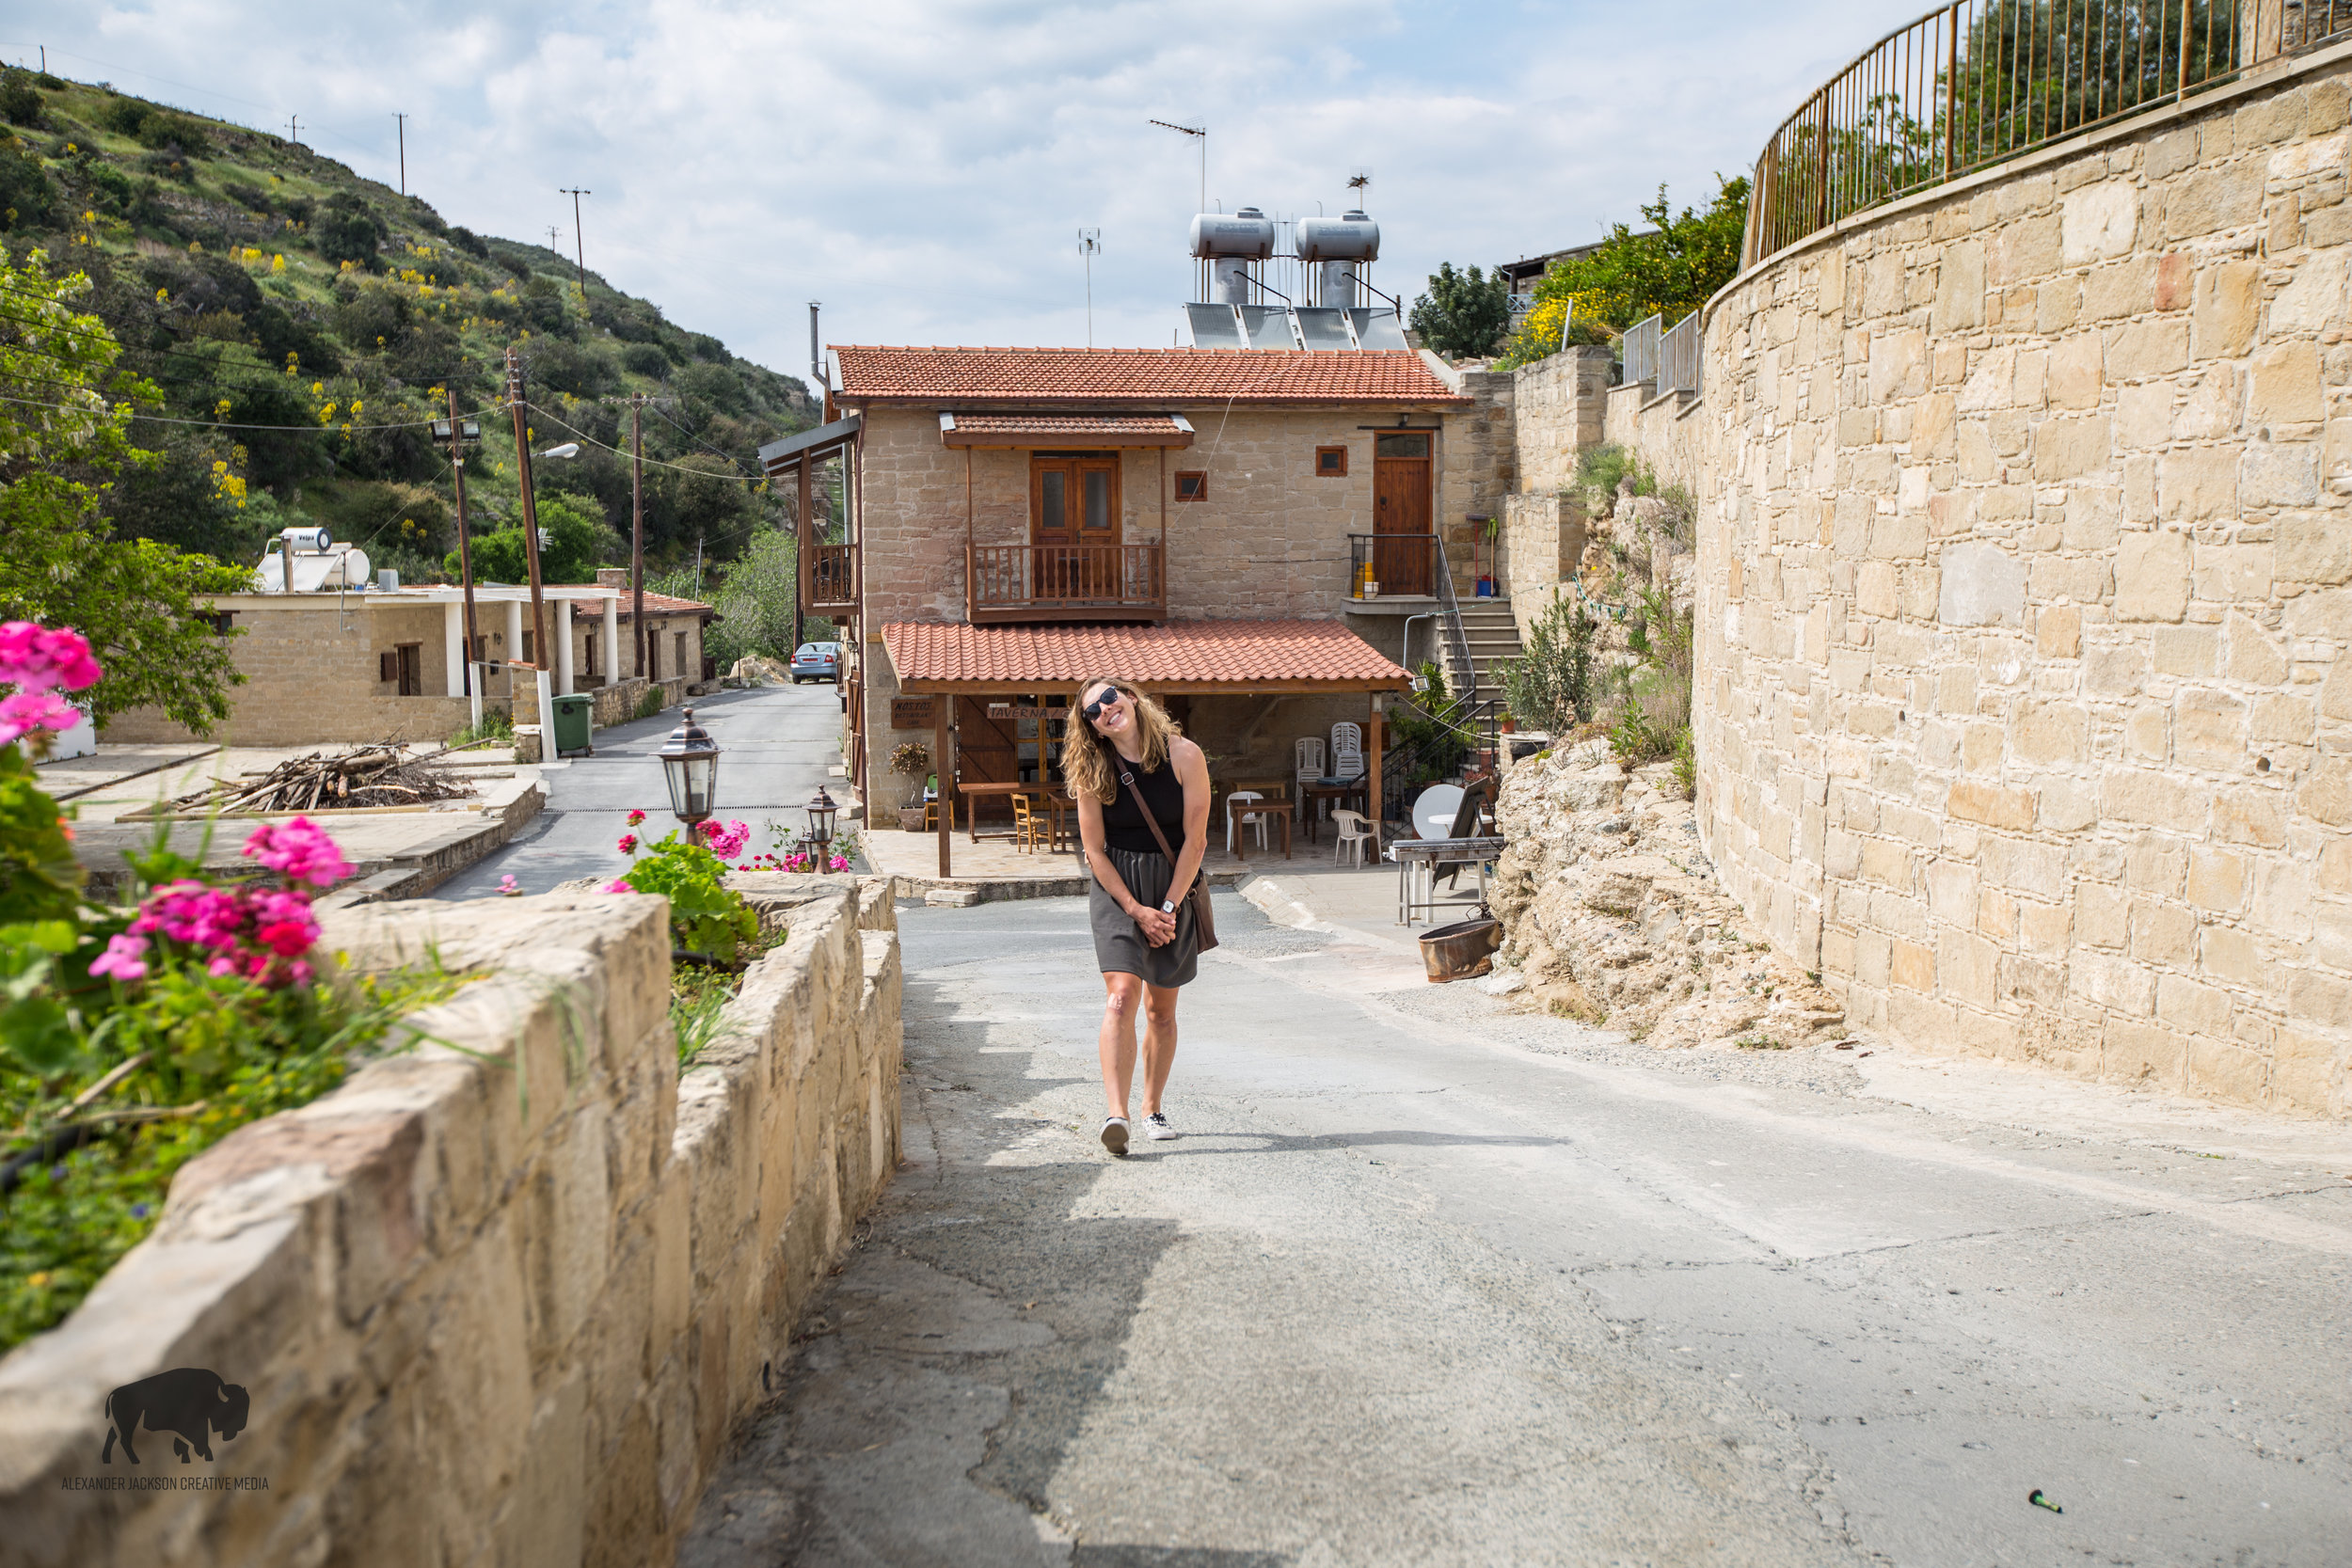 Tochni, Cyprus is a beautiful village nestled in between two hills on the way to Larnaca from Limassol.